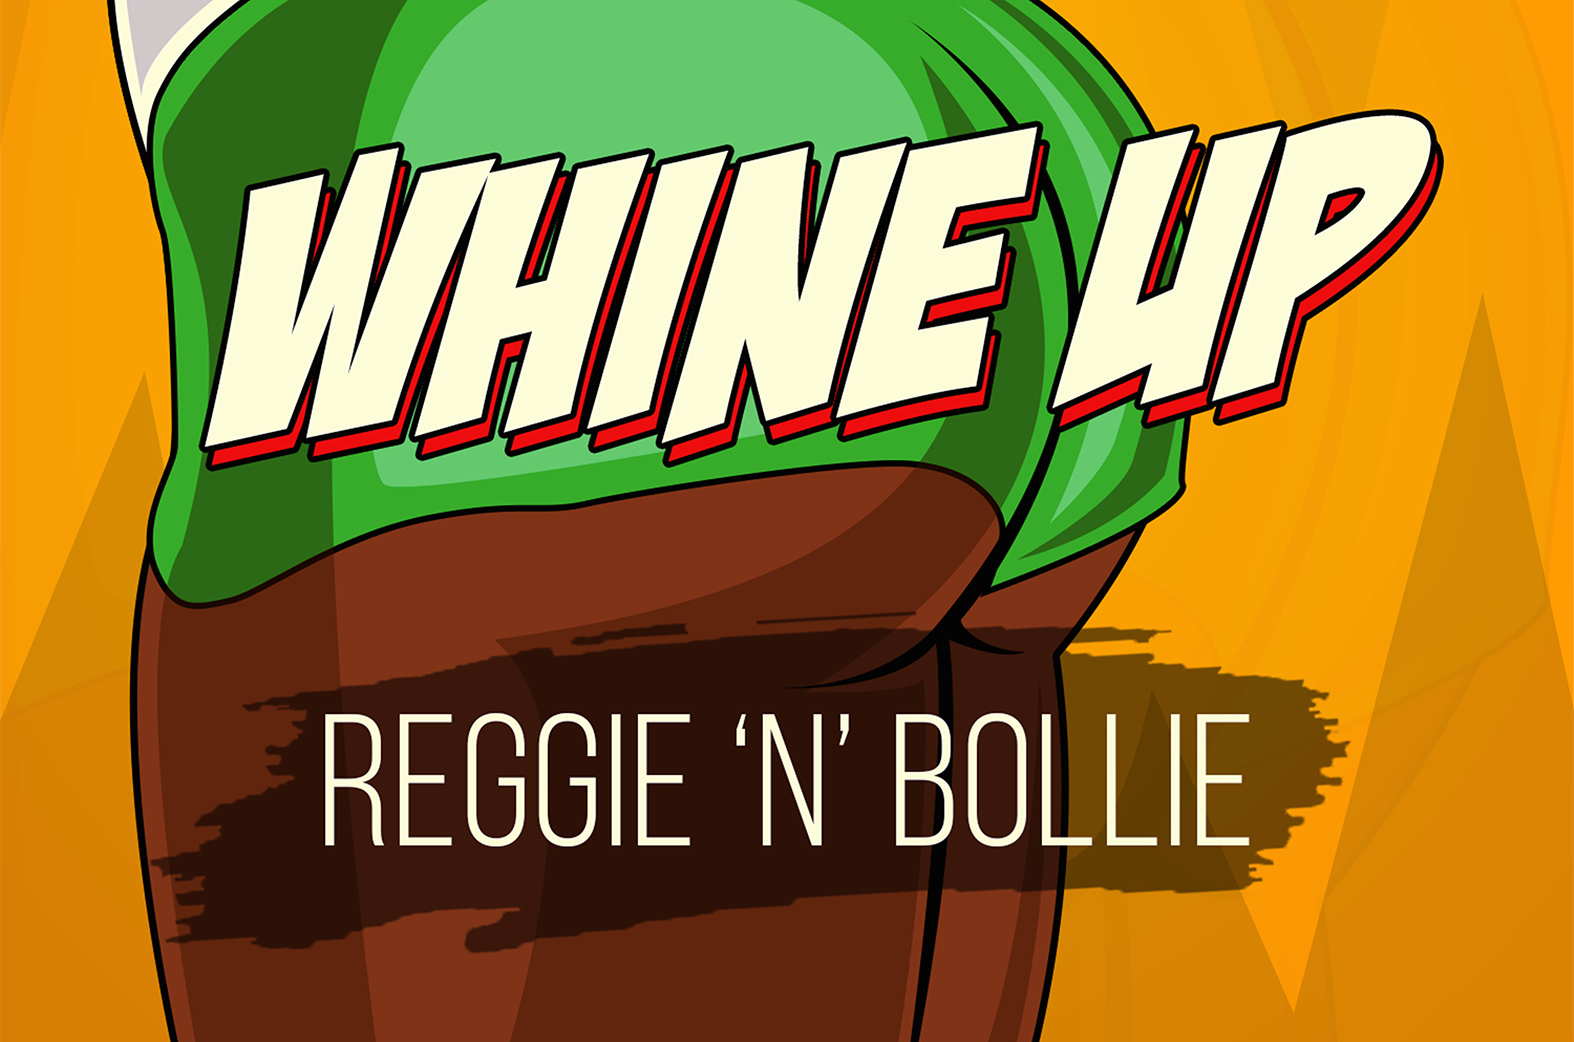 Reggie N Bollie release their first song for 2018